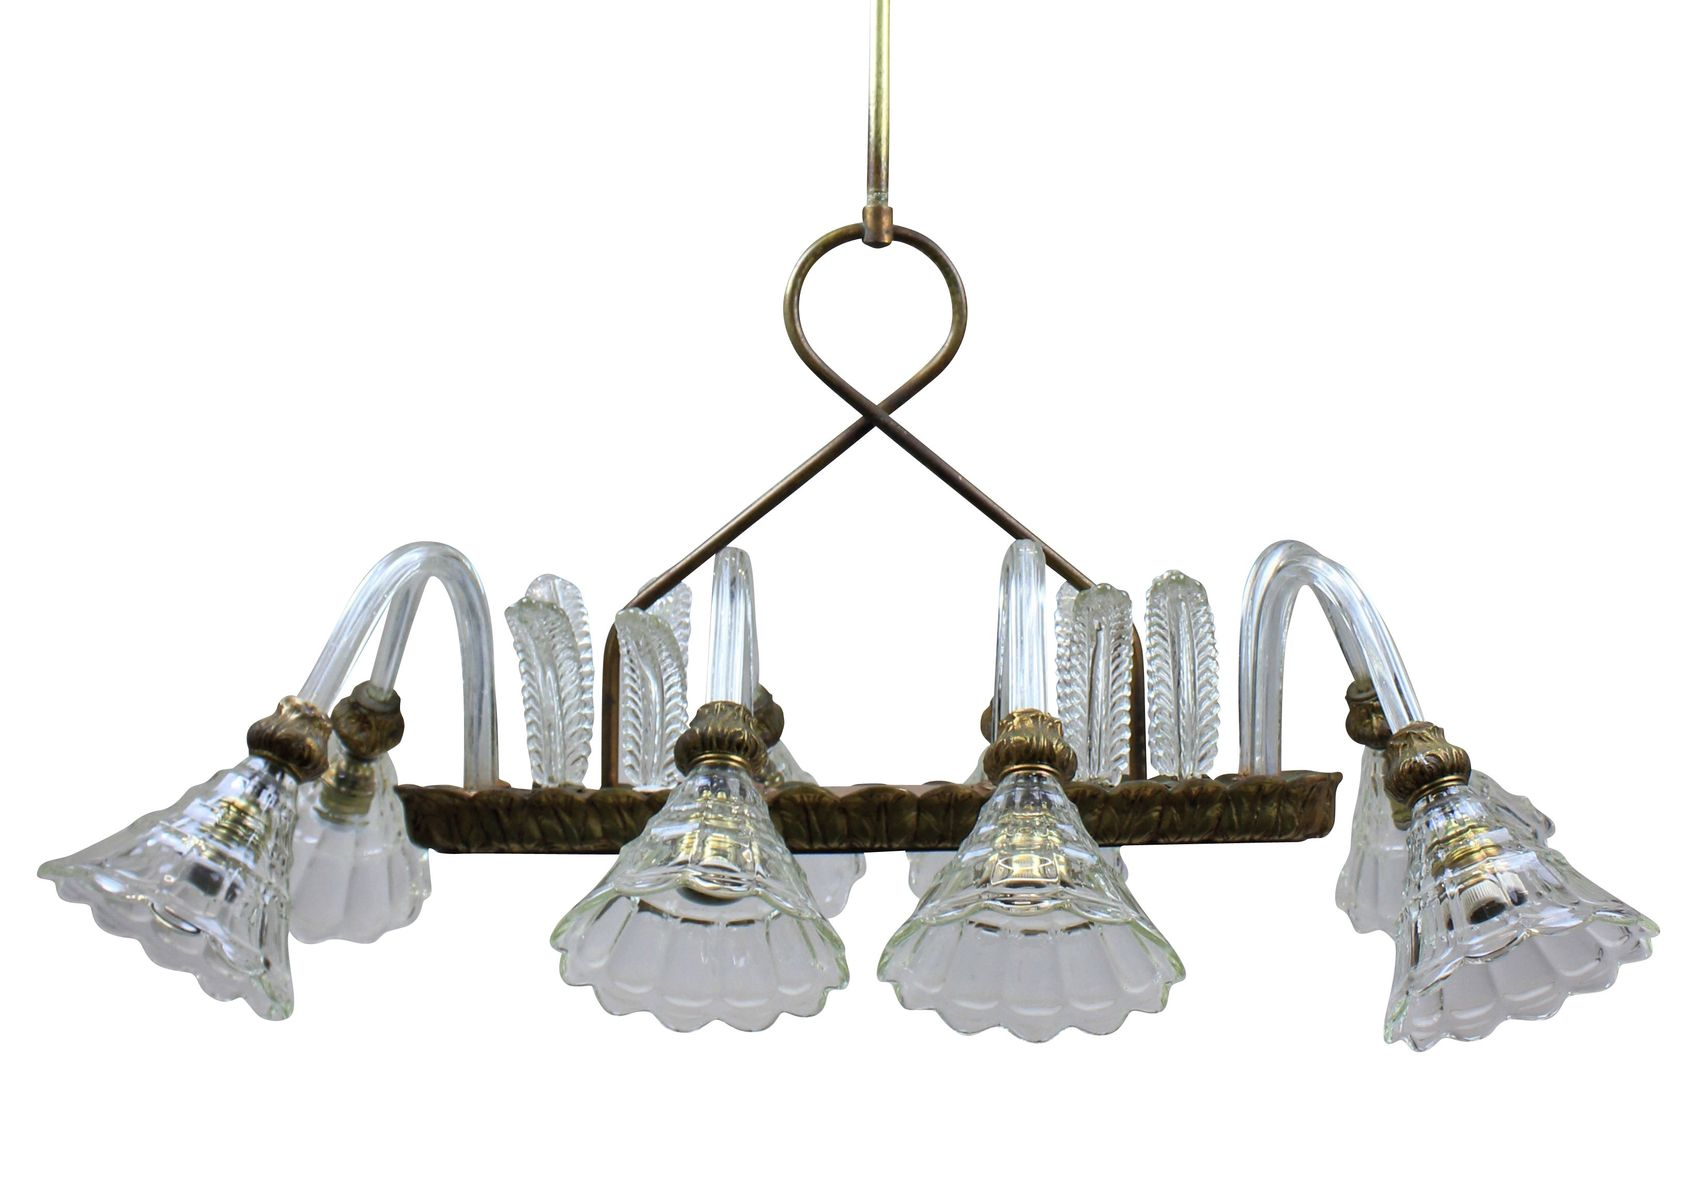 Rectangular chandelier from barovier toso 1950s for sale at pamono rectangular chandelier from barovier toso 1950s mozeypictures Choice Image